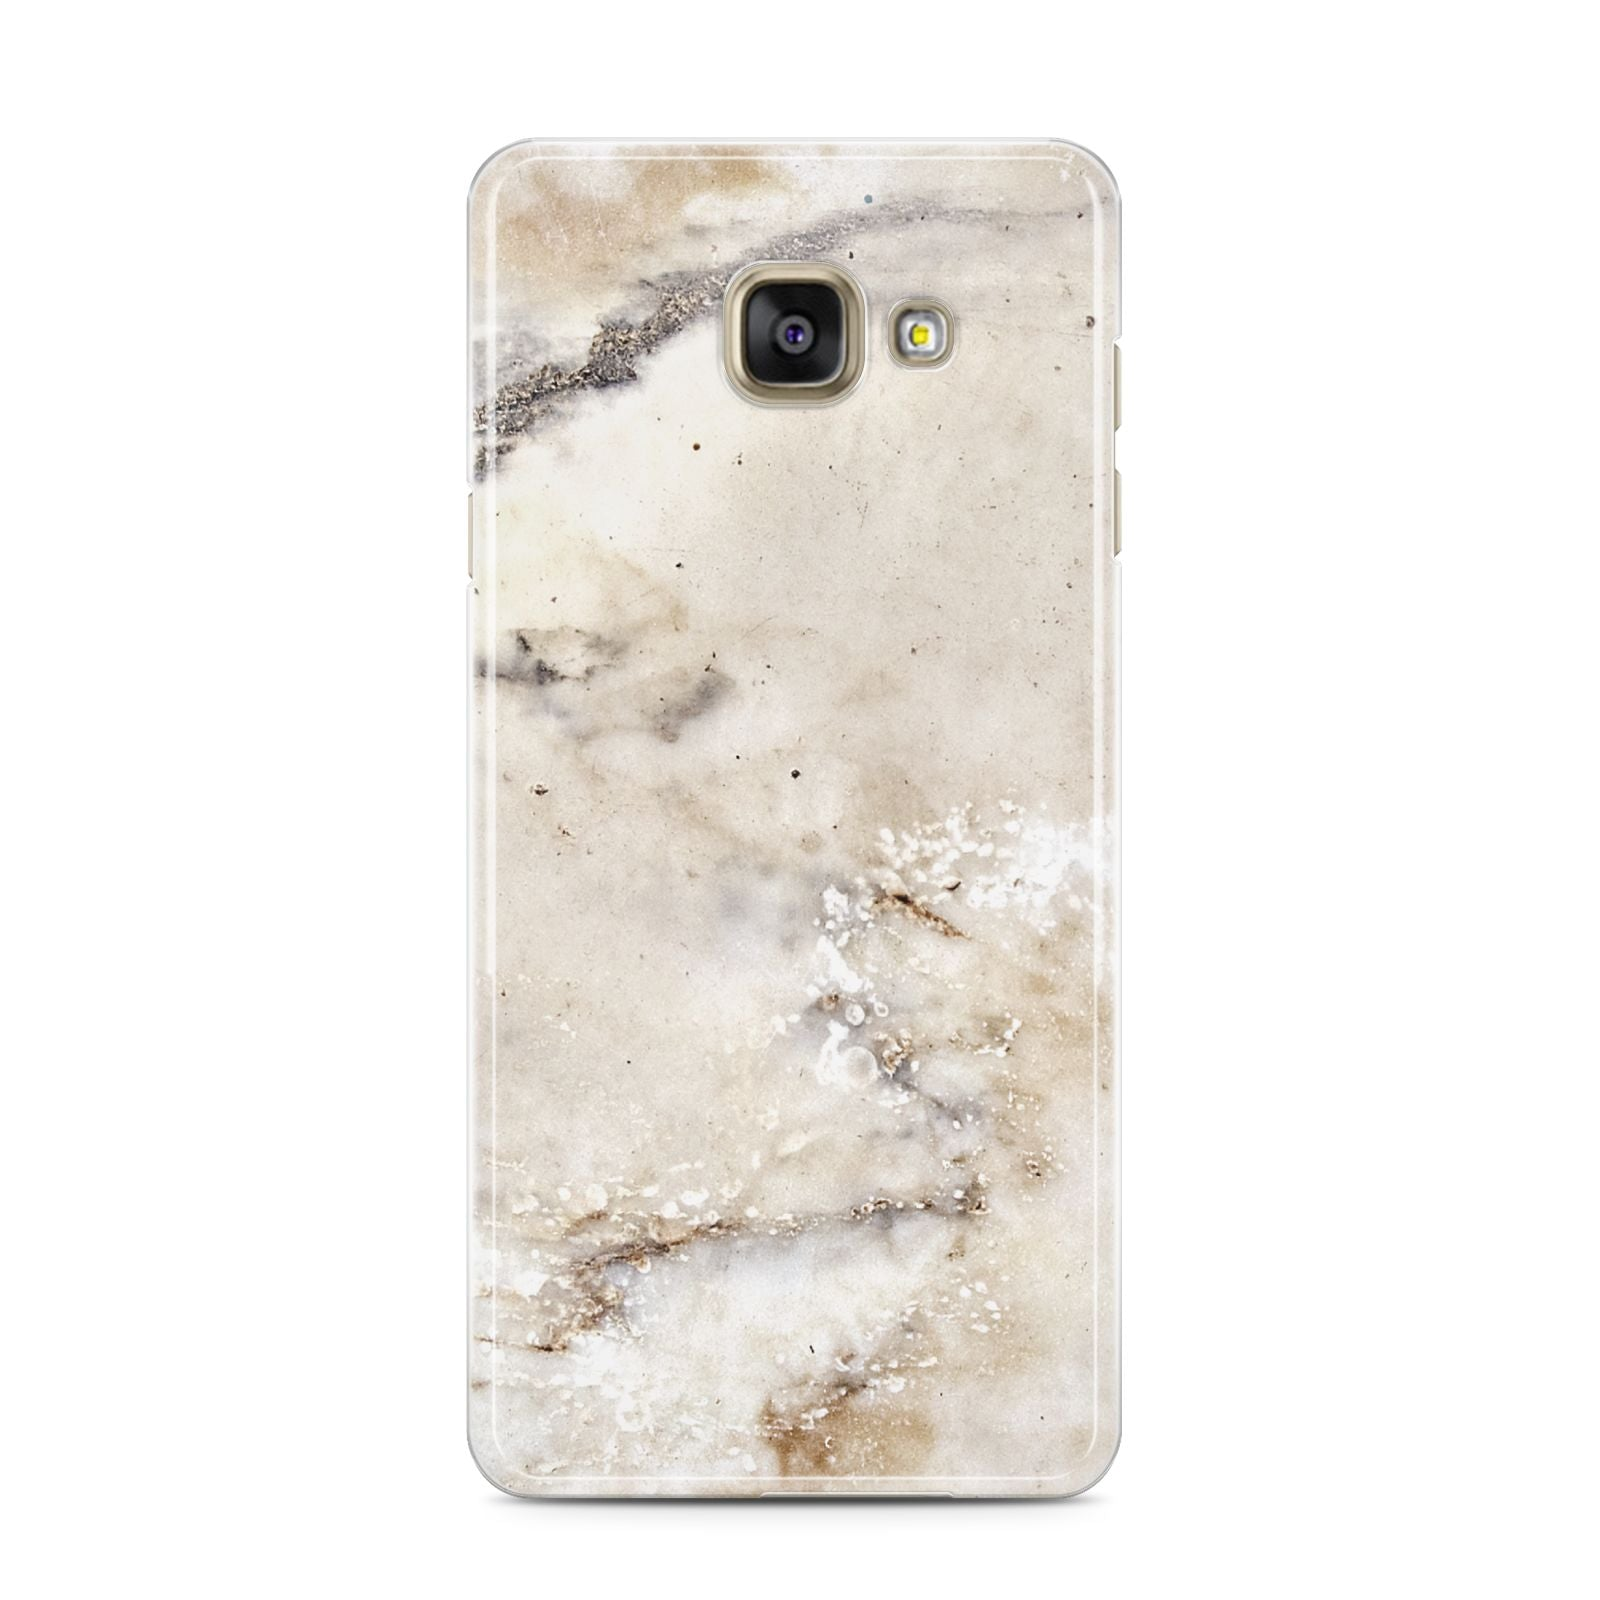 Faux Marble Effect Print Samsung Galaxy A3 2016 Case on gold phone